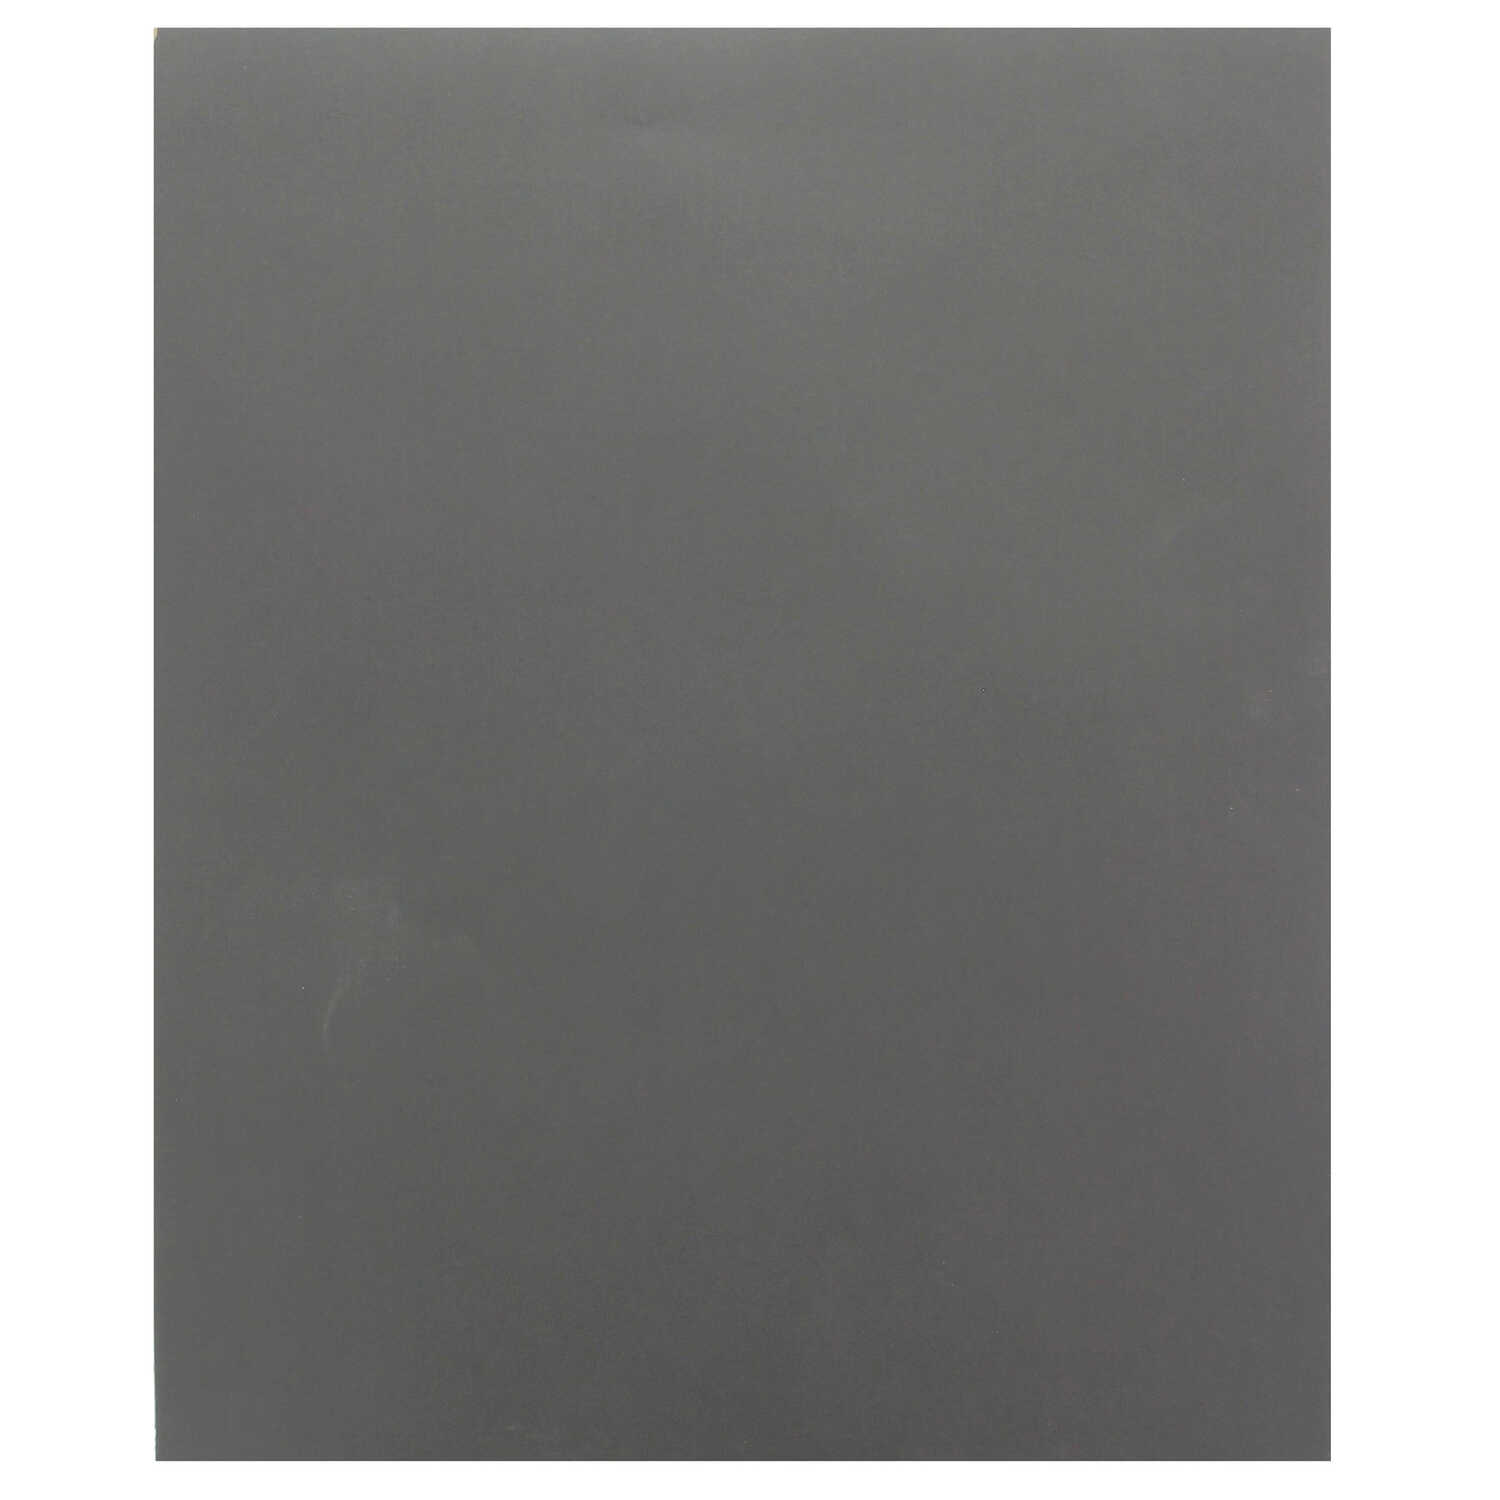 Gator  11 in. L x 9 in. W 1,500 Grit Mirror Fine  Silicon Carbide  Waterproof Sandpaper  1 pk